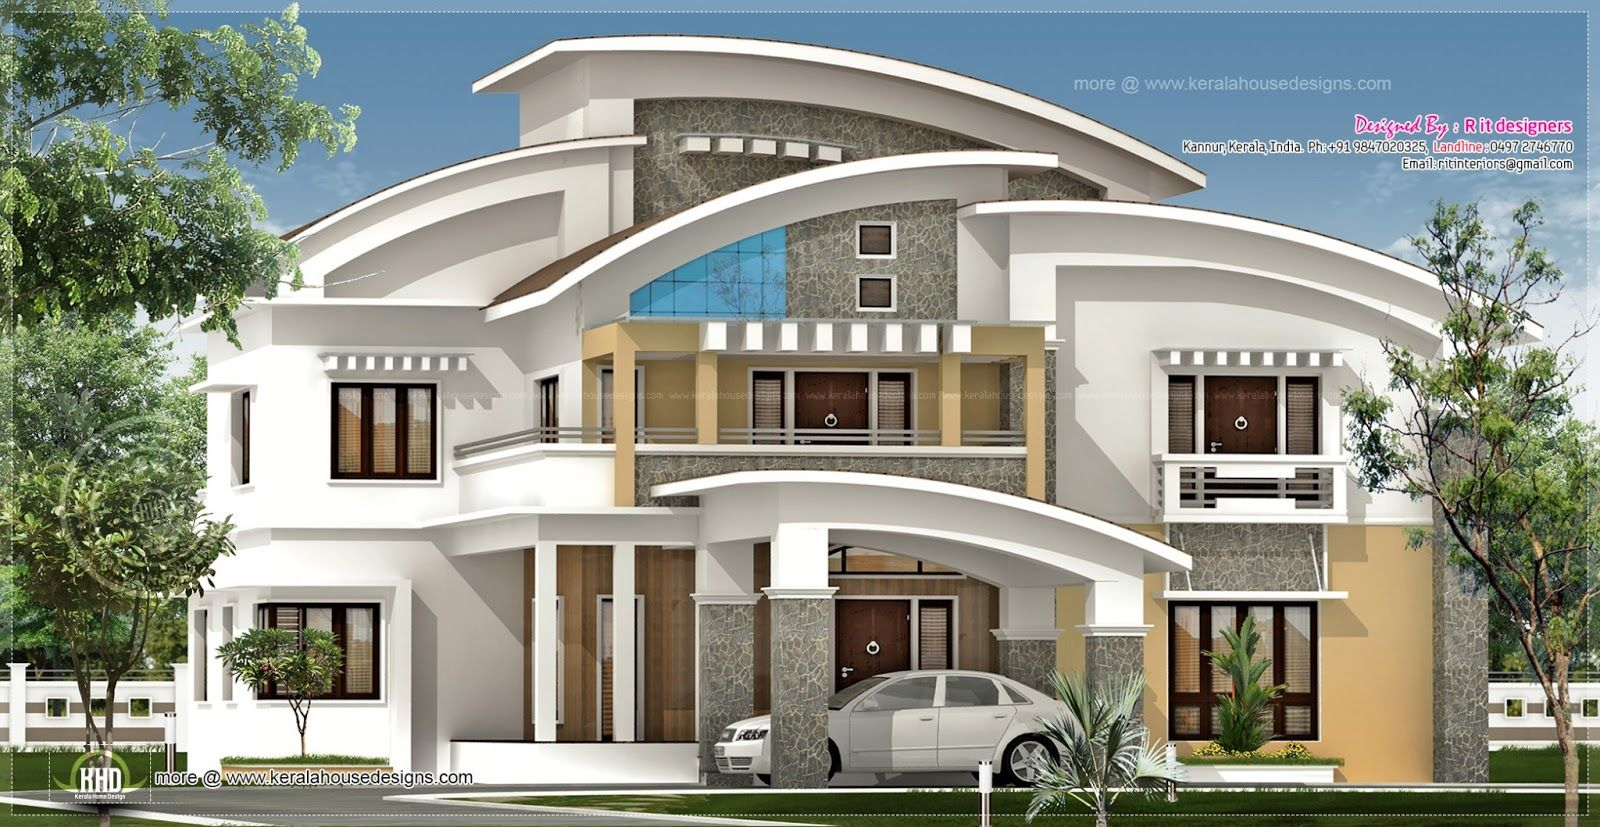 Awesome luxury homes plans 8 french country luxury home for Luxury house